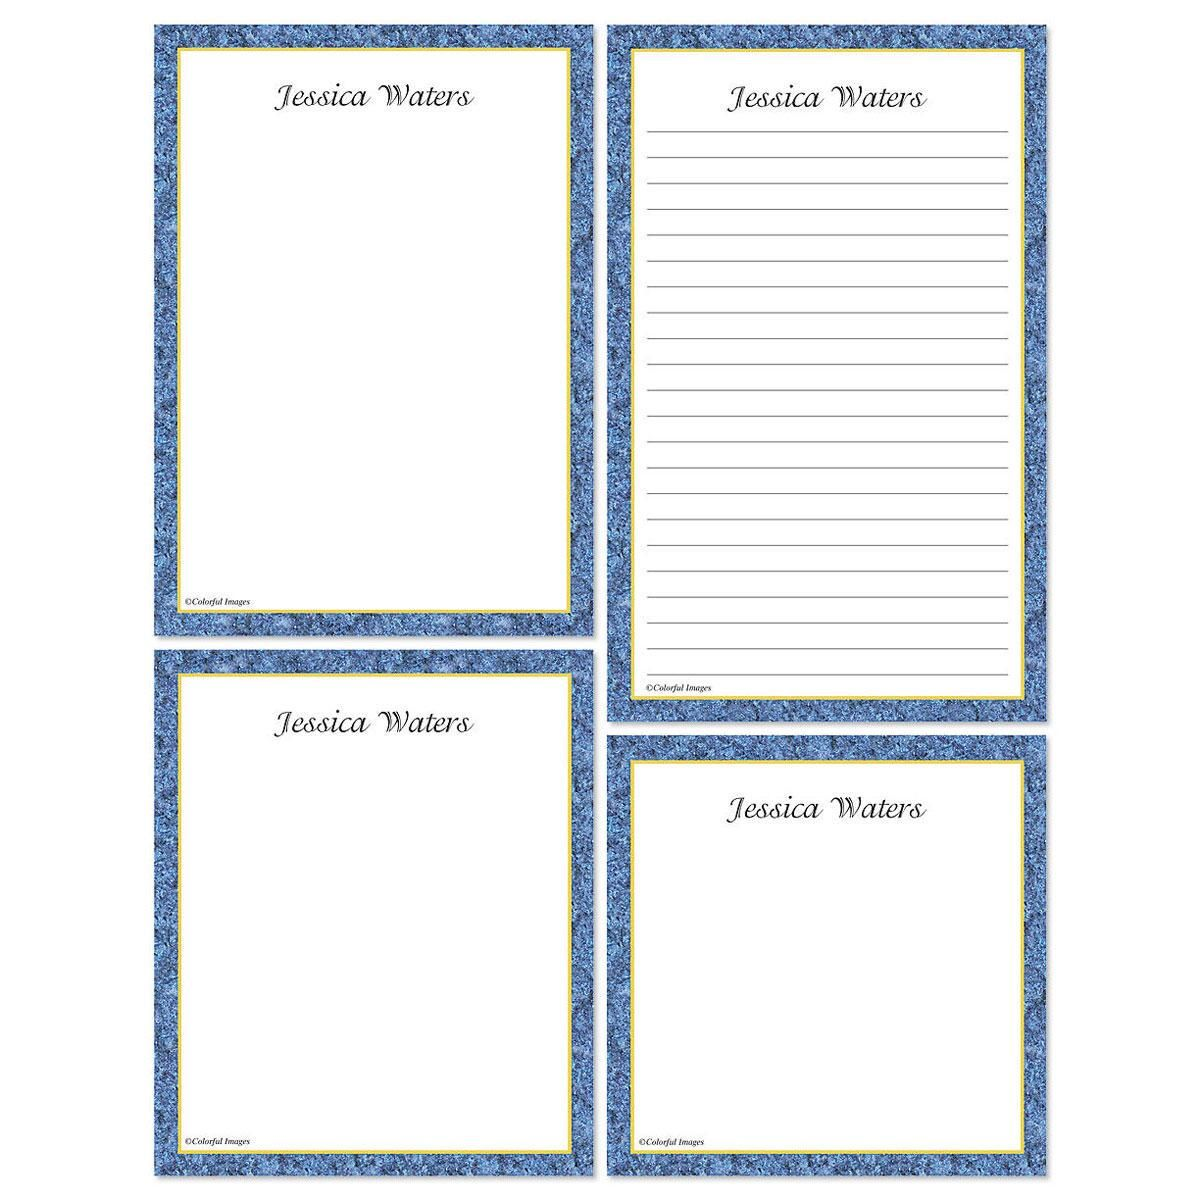 Granite & Gold Memo Pad Sets